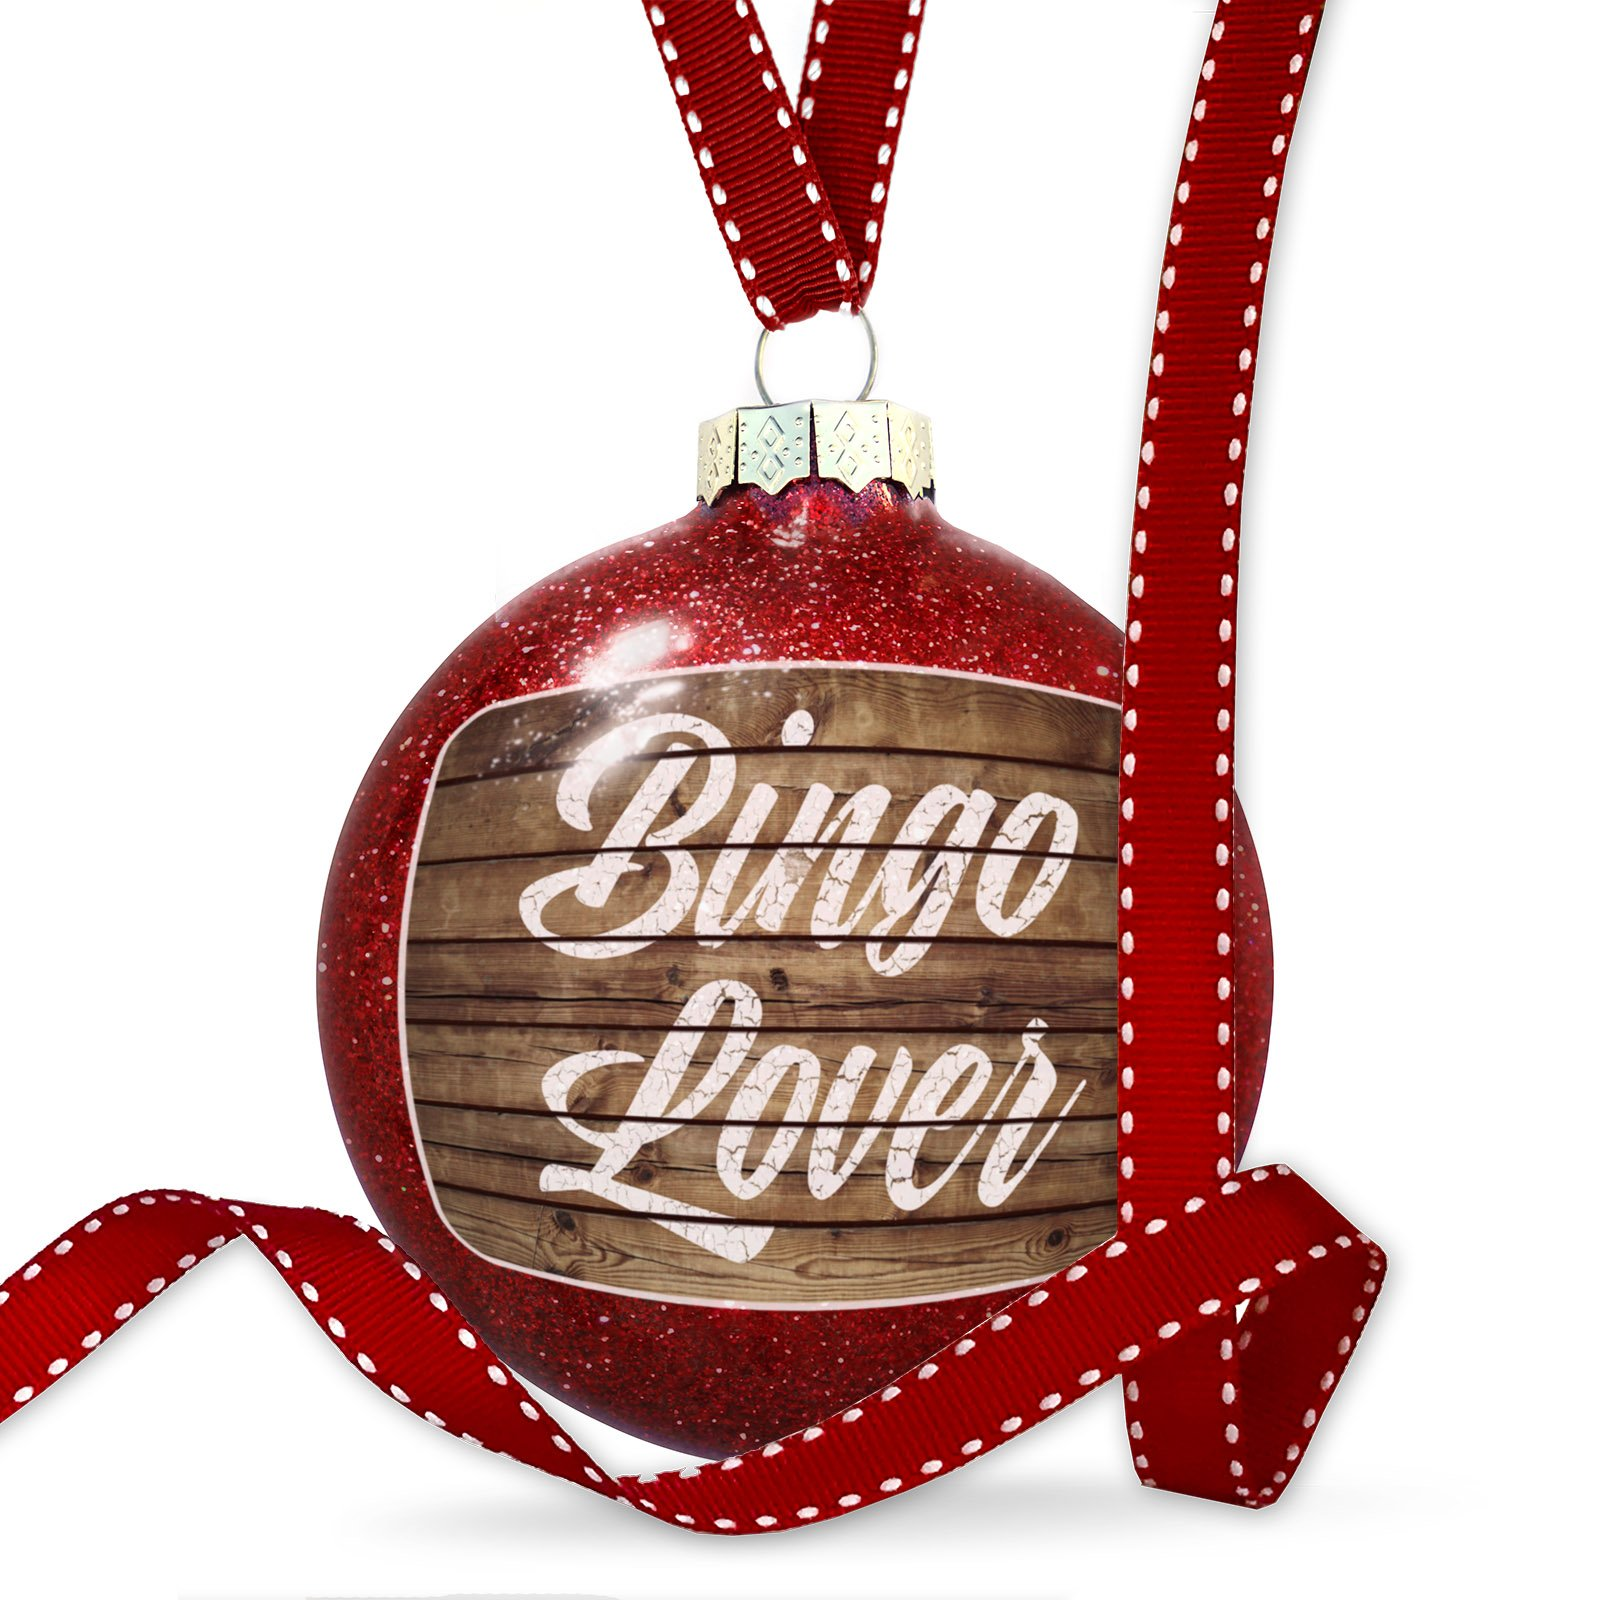 Christmas Decoration Painted Wood Bingo Lover Ornament by NEONBLOND